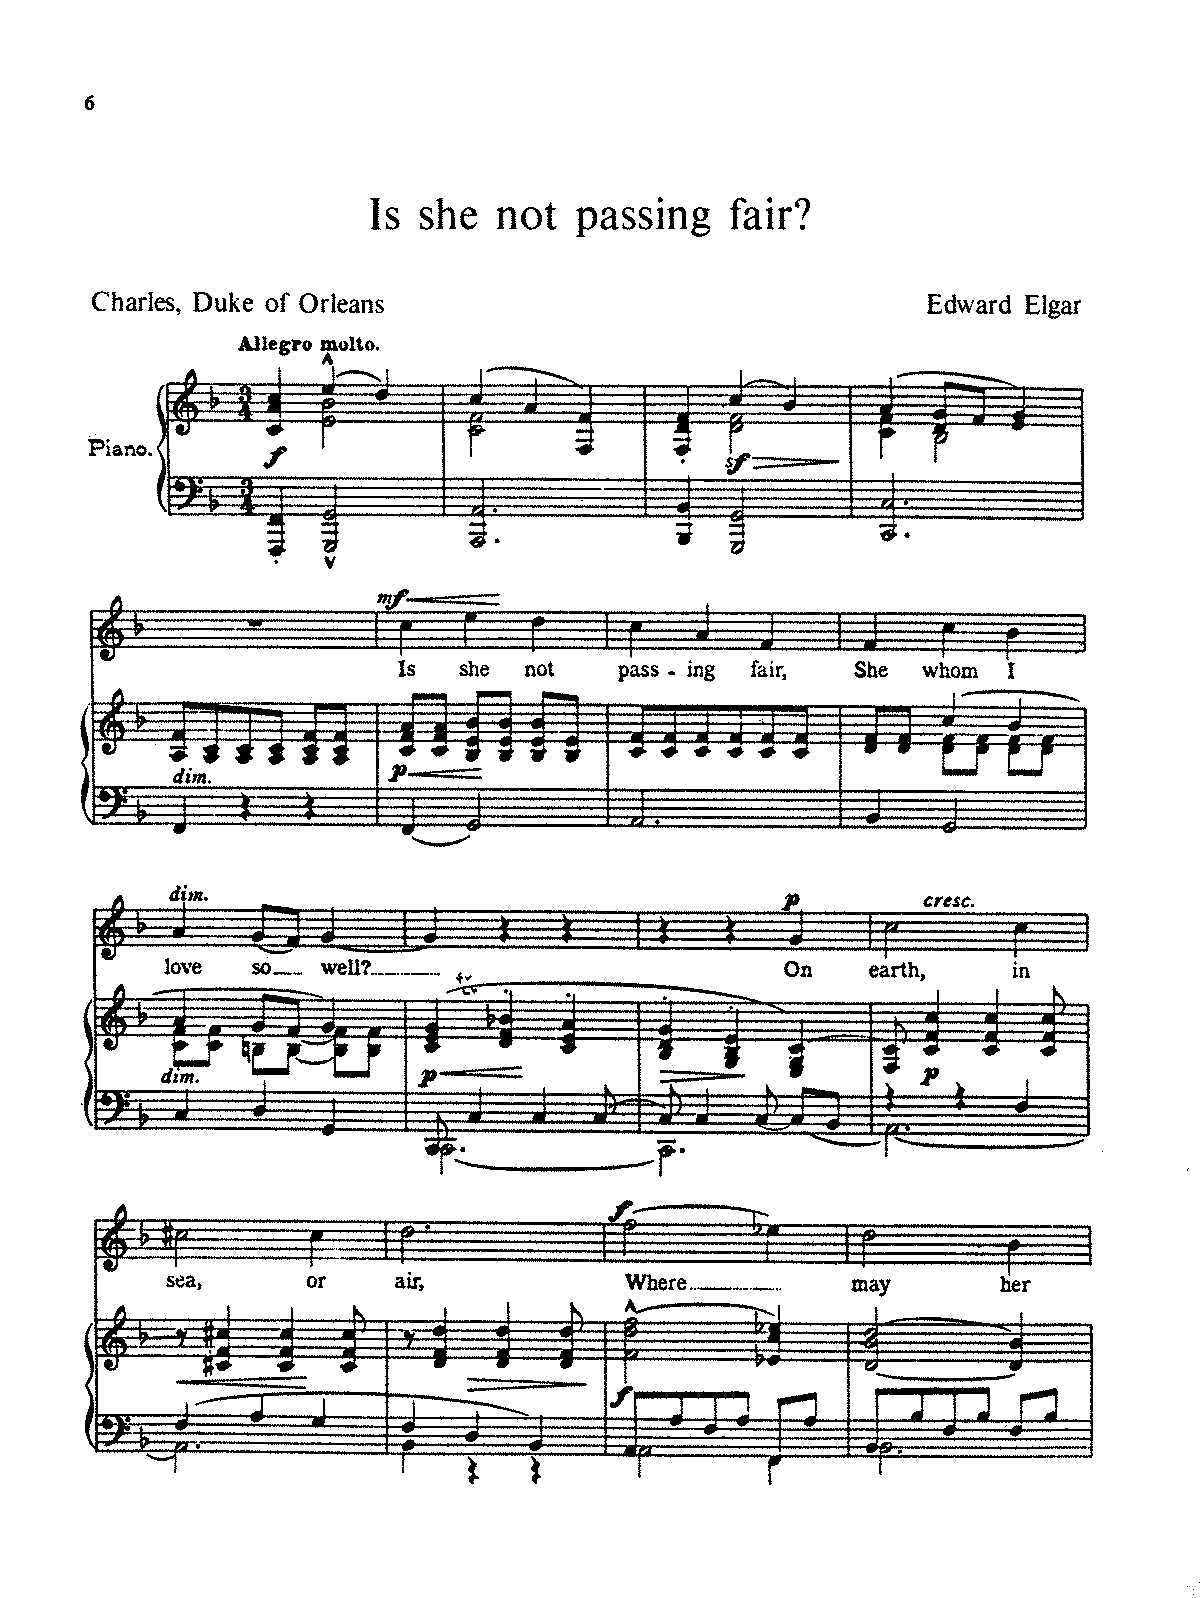 PMLP75197-Elgar - Is she not passing fair (voice and piano).pdf